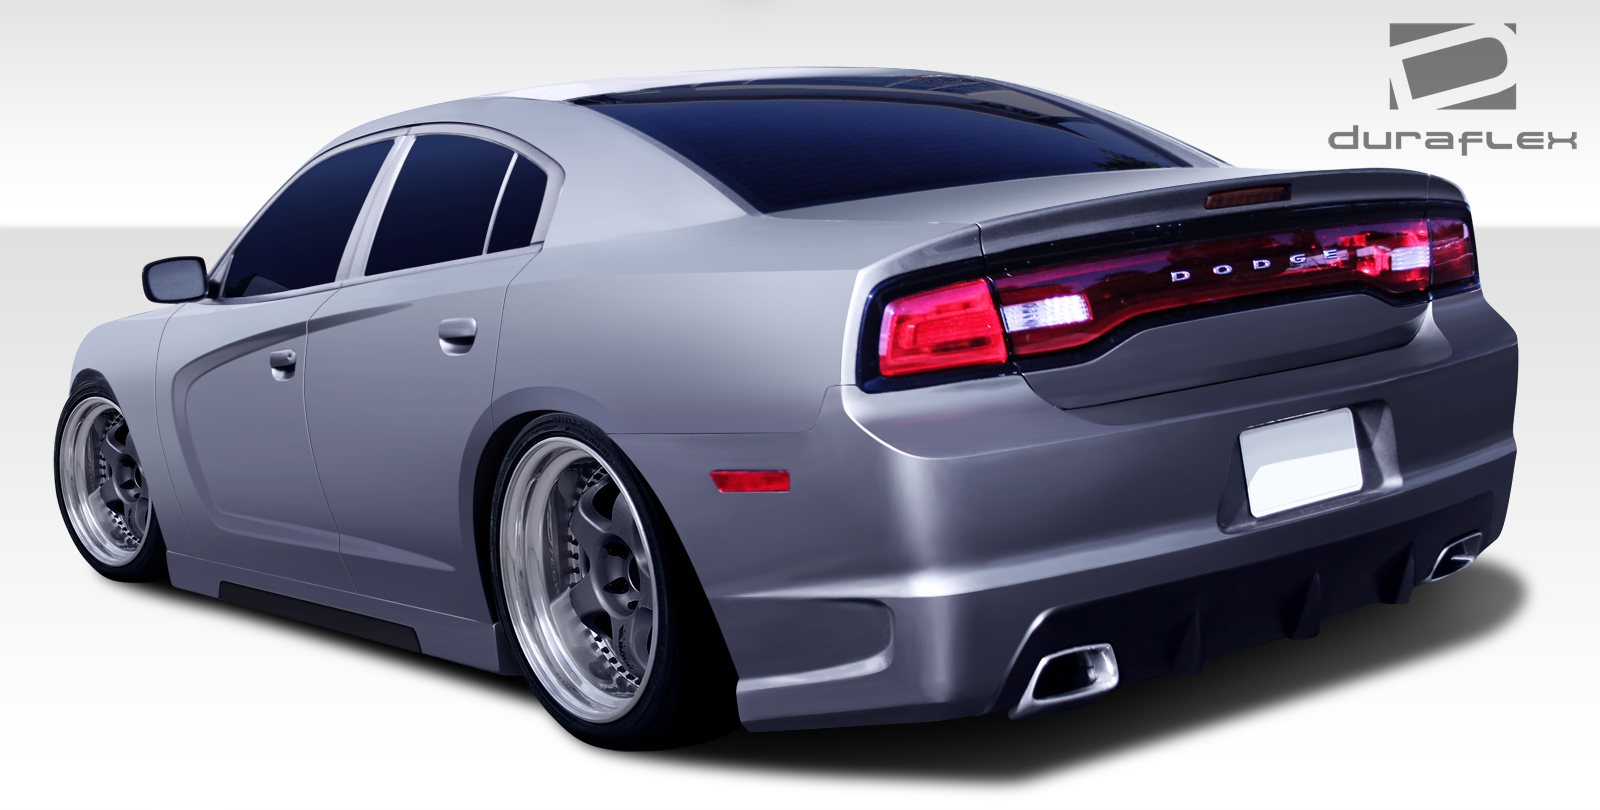 Peep This Extreme Dimension Body Kit And Hood For 2nd Gen!